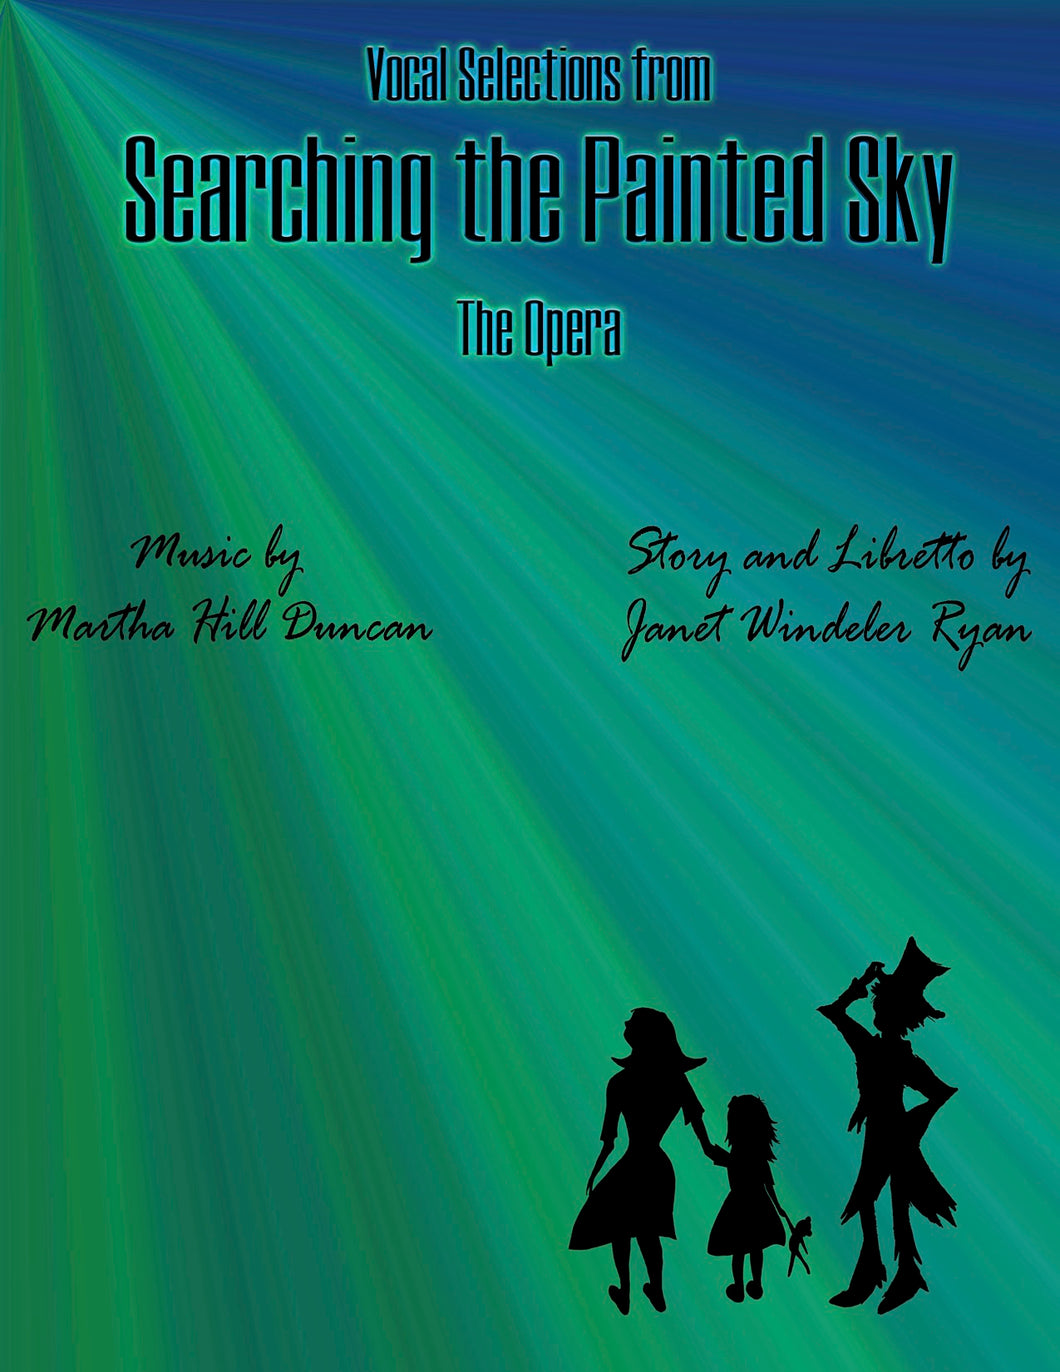 TO HOME - Voice & Piano from SEARCHING THE PAINTED SKY, THE OPERA